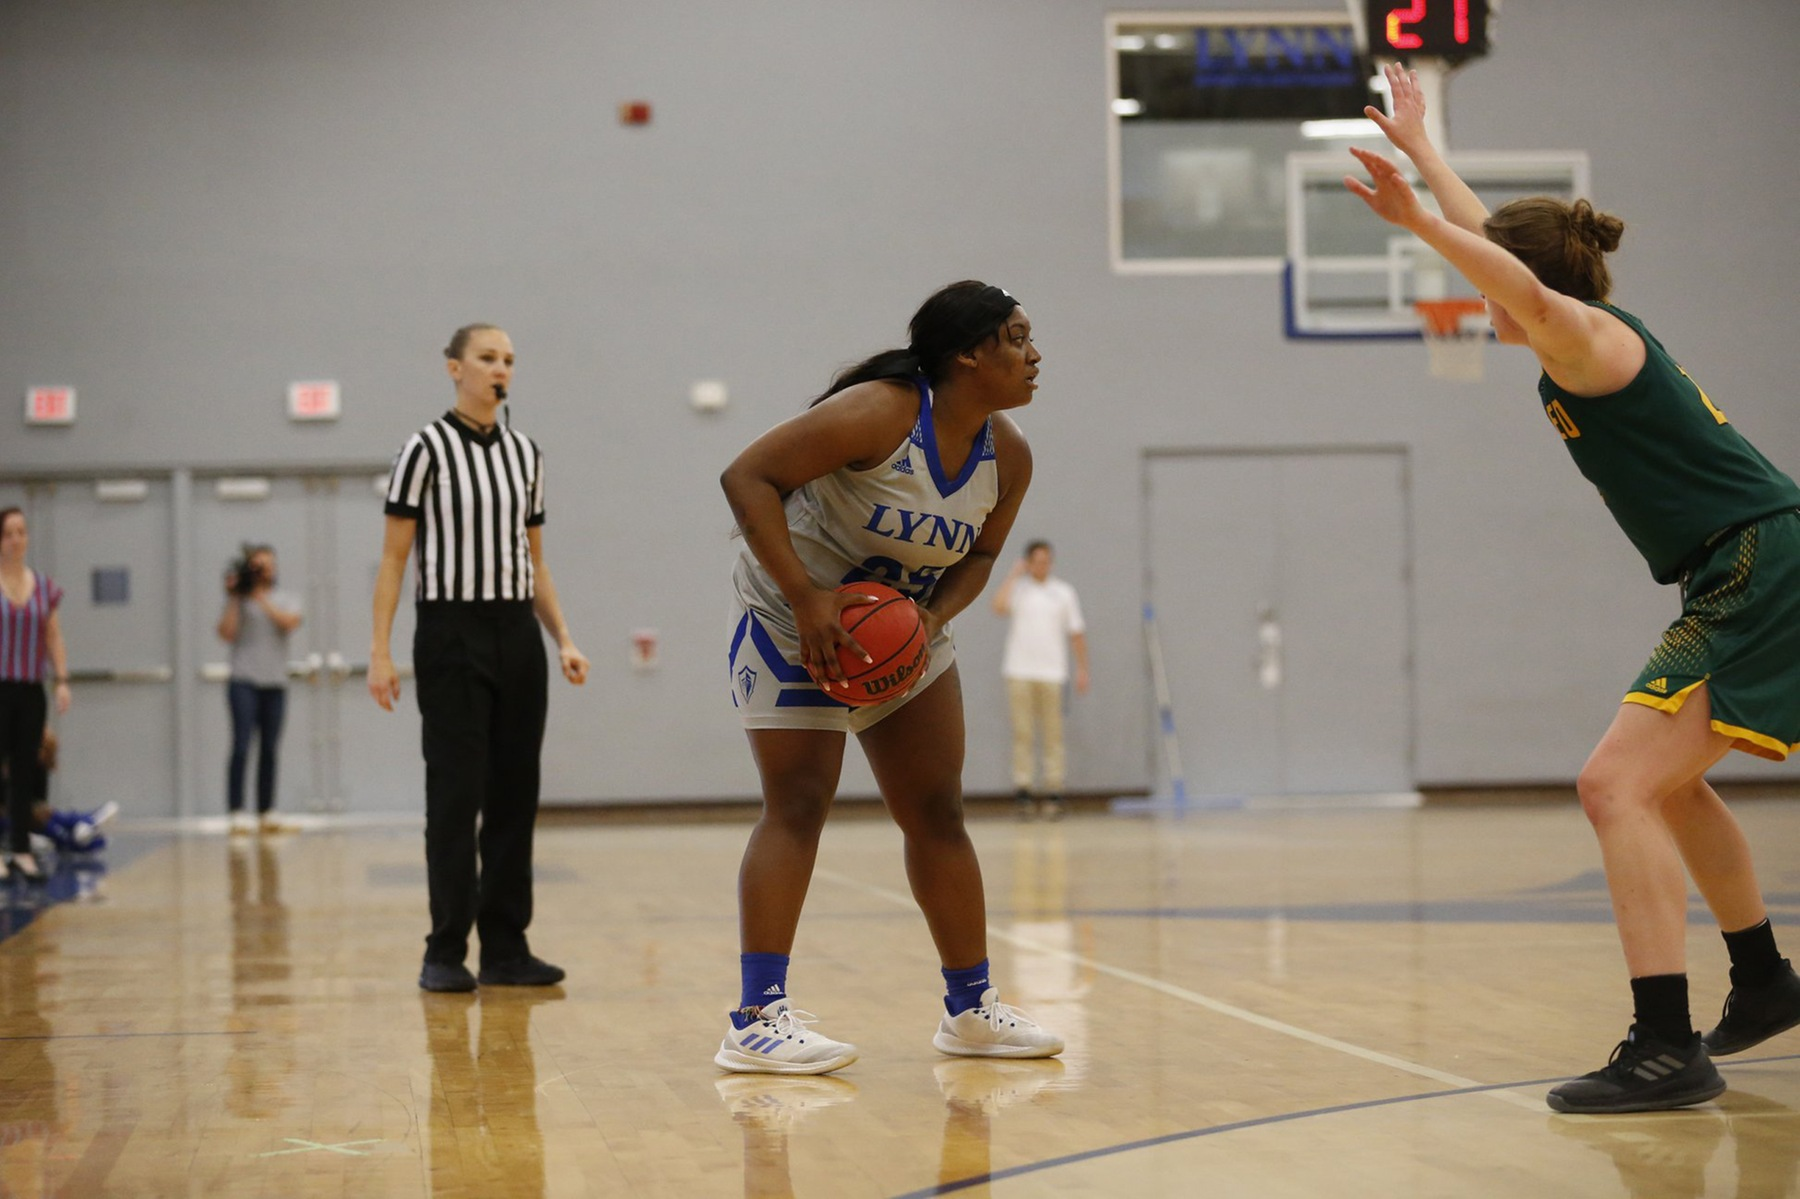 Women's Basketball Locks Up Lions, Potts Pours in 21